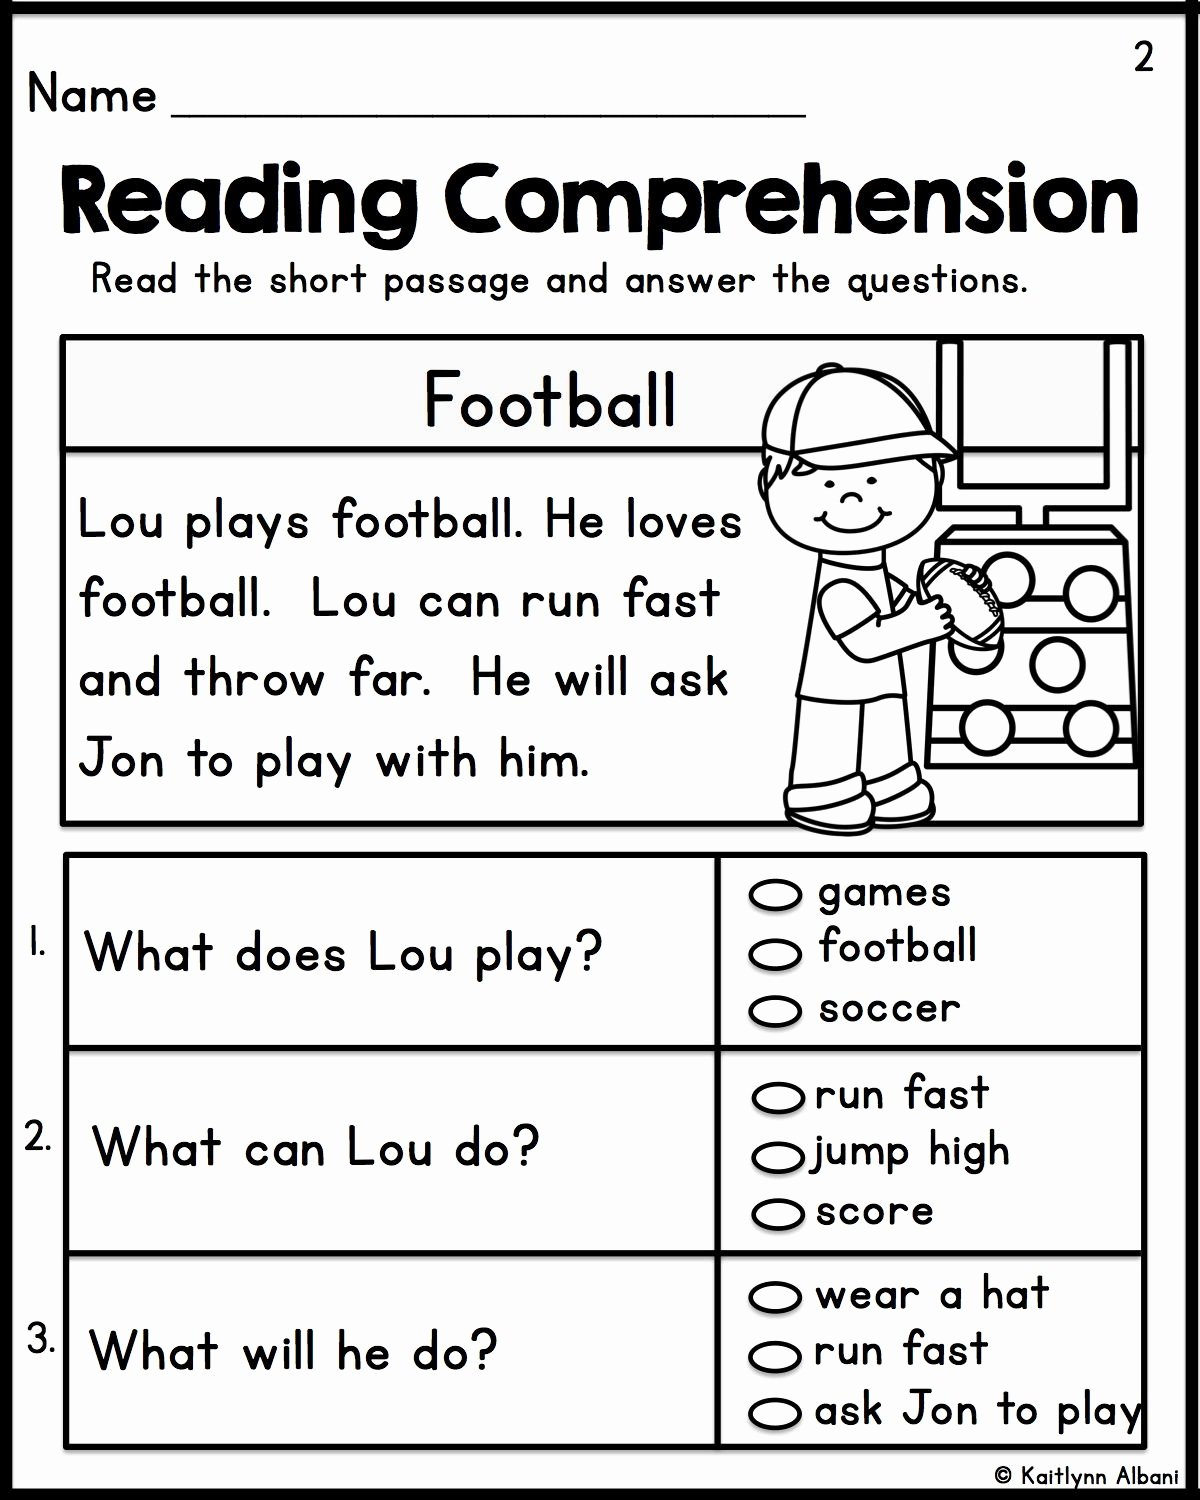 Comprehension Worksheets for First Grade Lovely Math Worksheet 1st Grade Reading Gamese Prehension